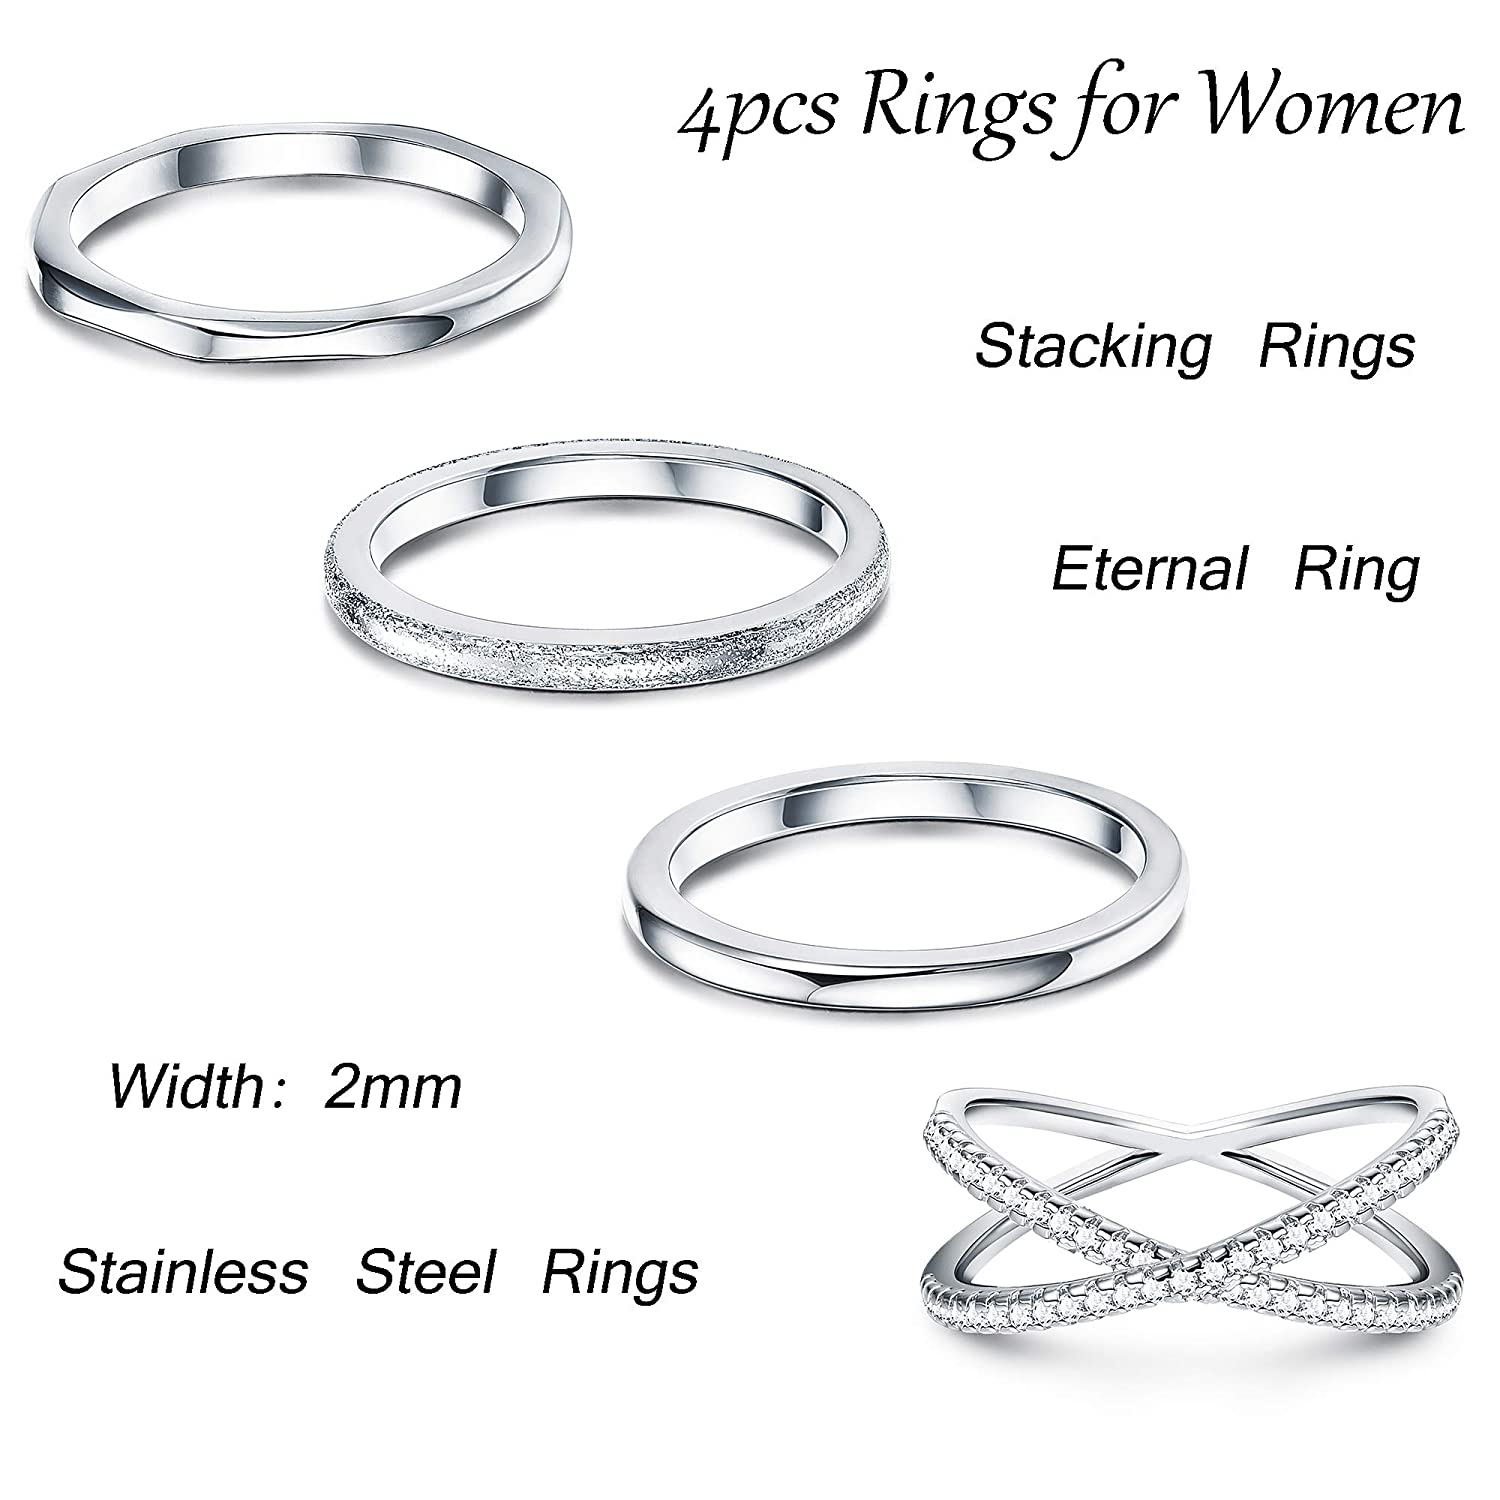 a773775b46b9 Amazon.com  LOYALLOOK 4PCS Stainless Steel Stacking Wedding Band Rings  Women CZ Criss Cross Ring Girls Engagement Eternity Knuckle Mid Ring Set  Silver Rose ...